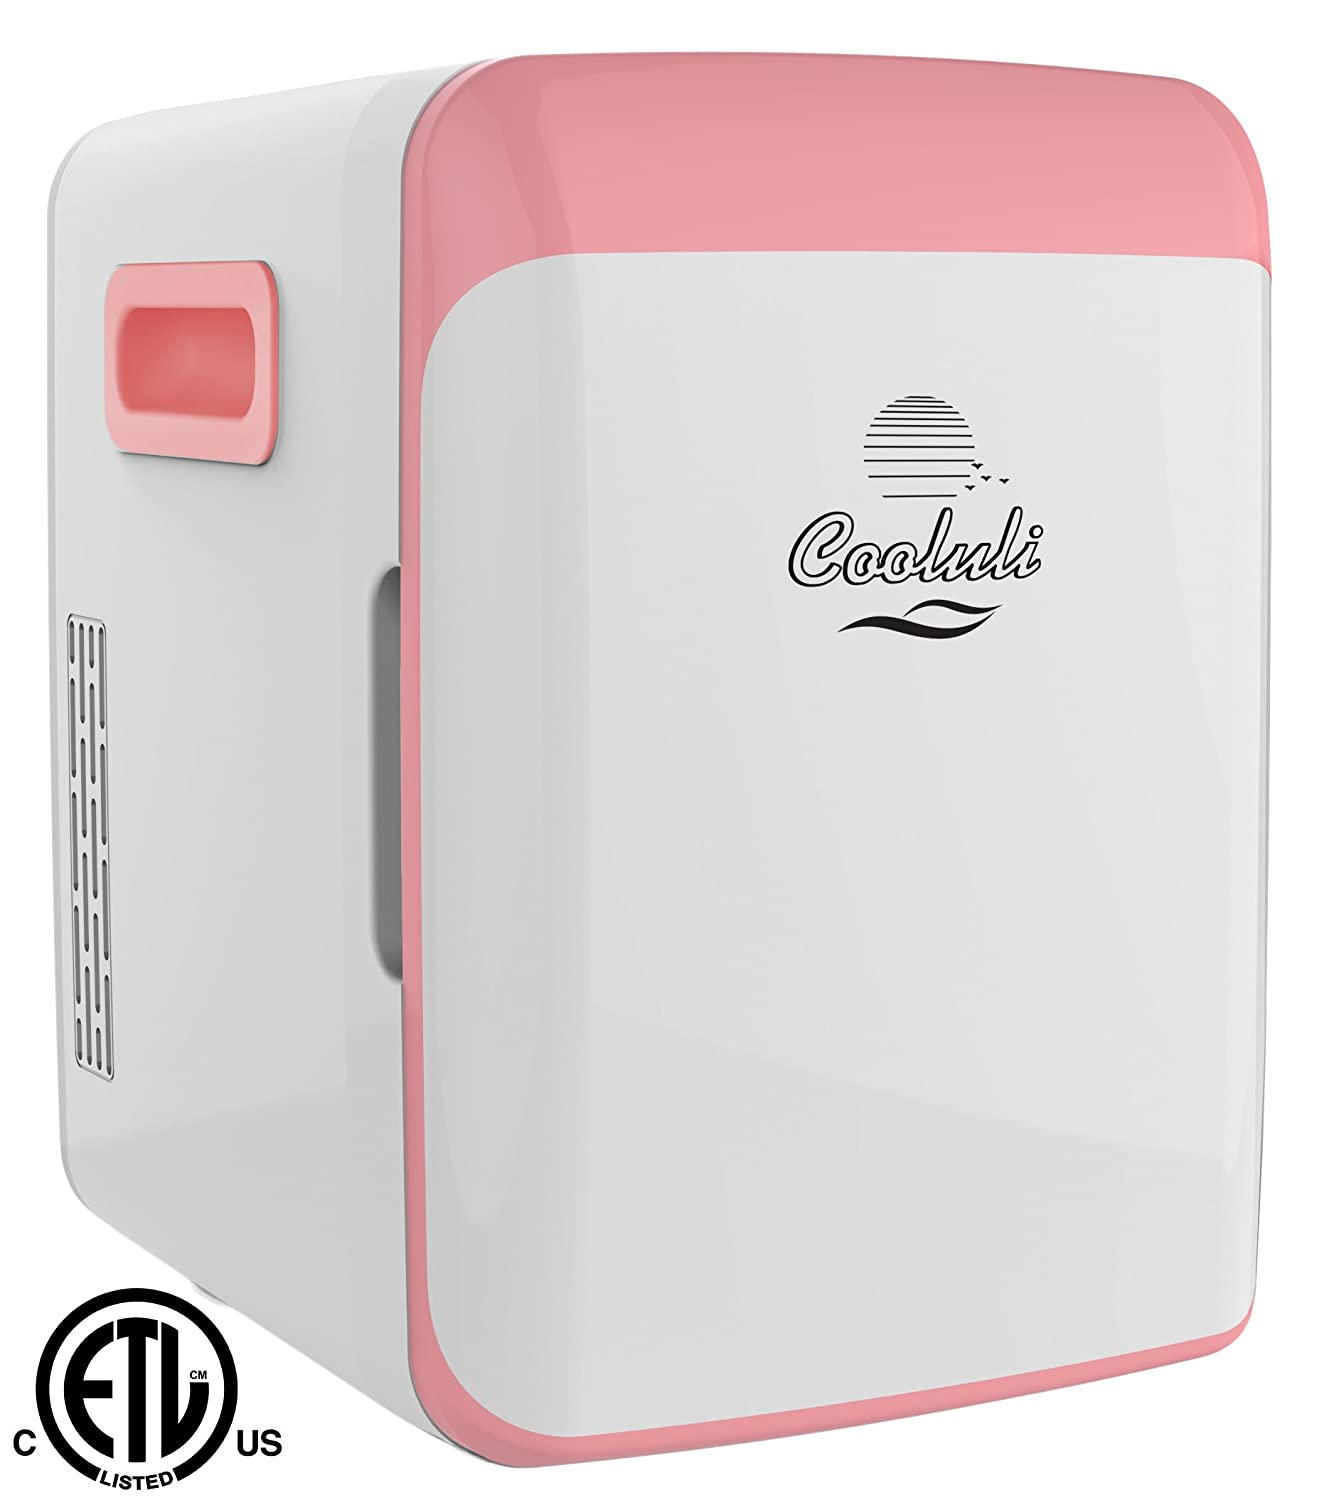 Cooluli Classic 15-liter Compact Cooler/Warmer Mini Fridge for Cars, Road Trips, Homes, Offices and Dorms